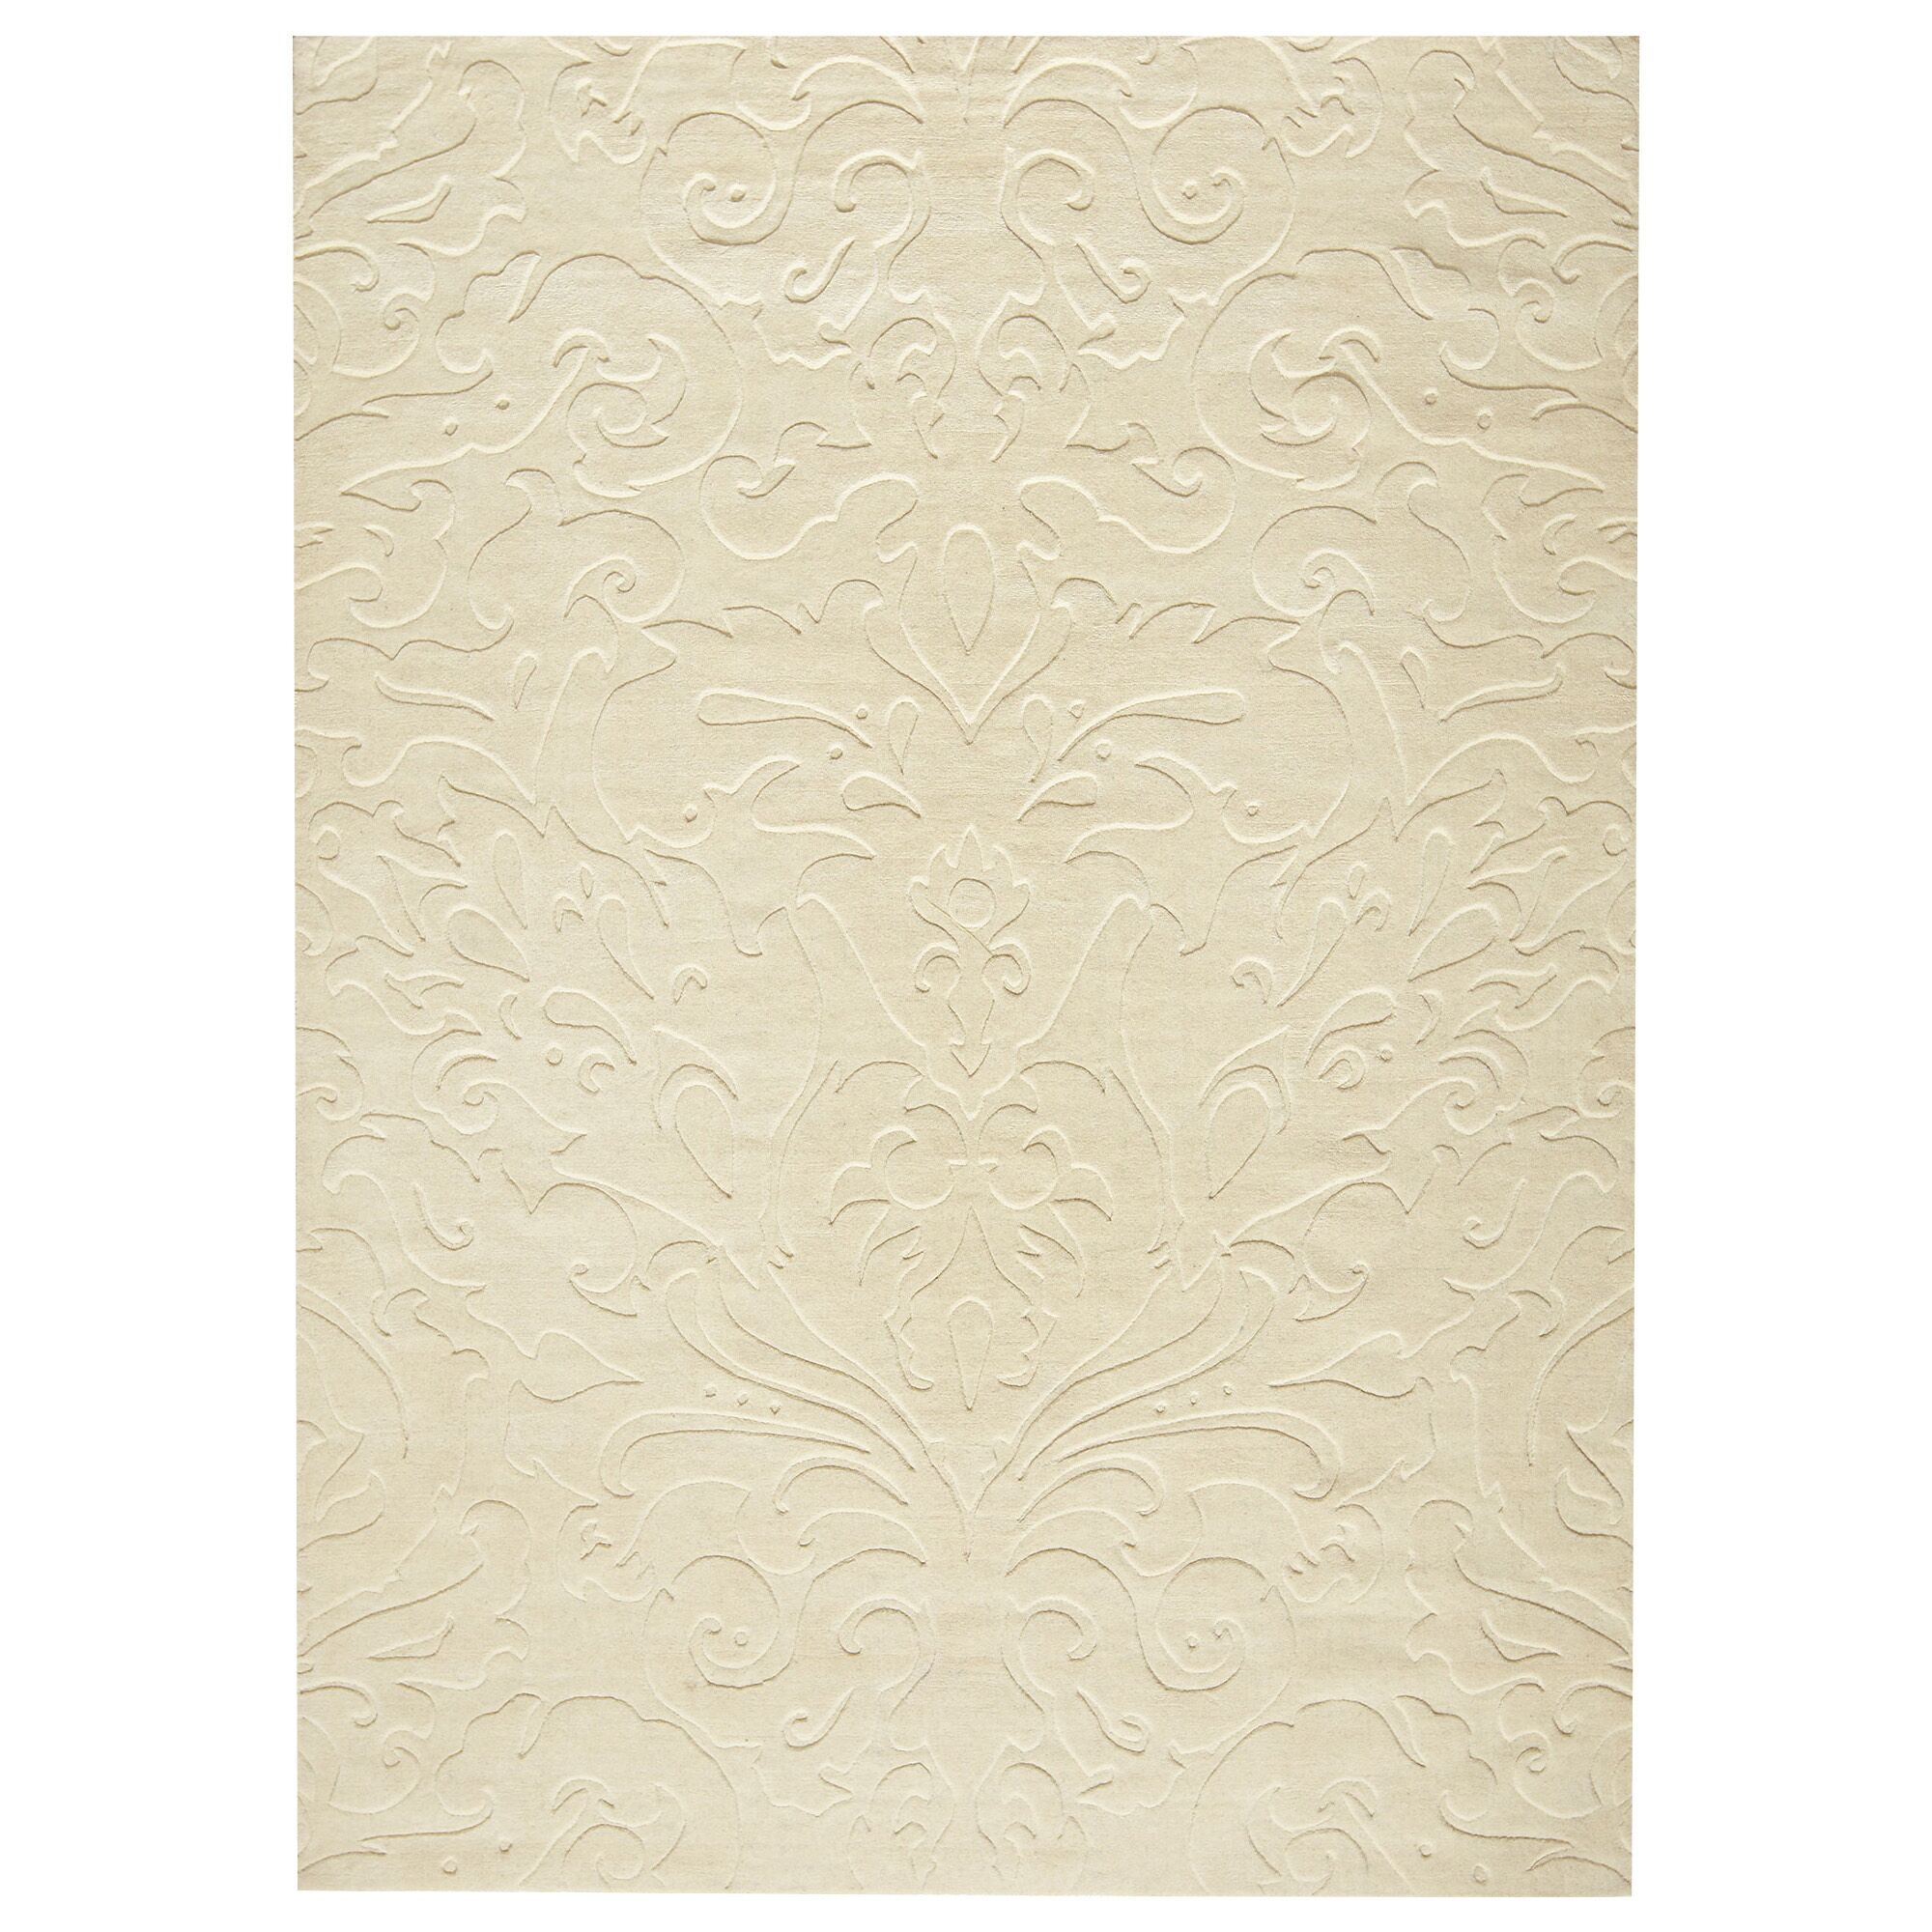 Ella Parchment Hand-Woven Area Rug Rug Size: Rectangle 8' x 11'